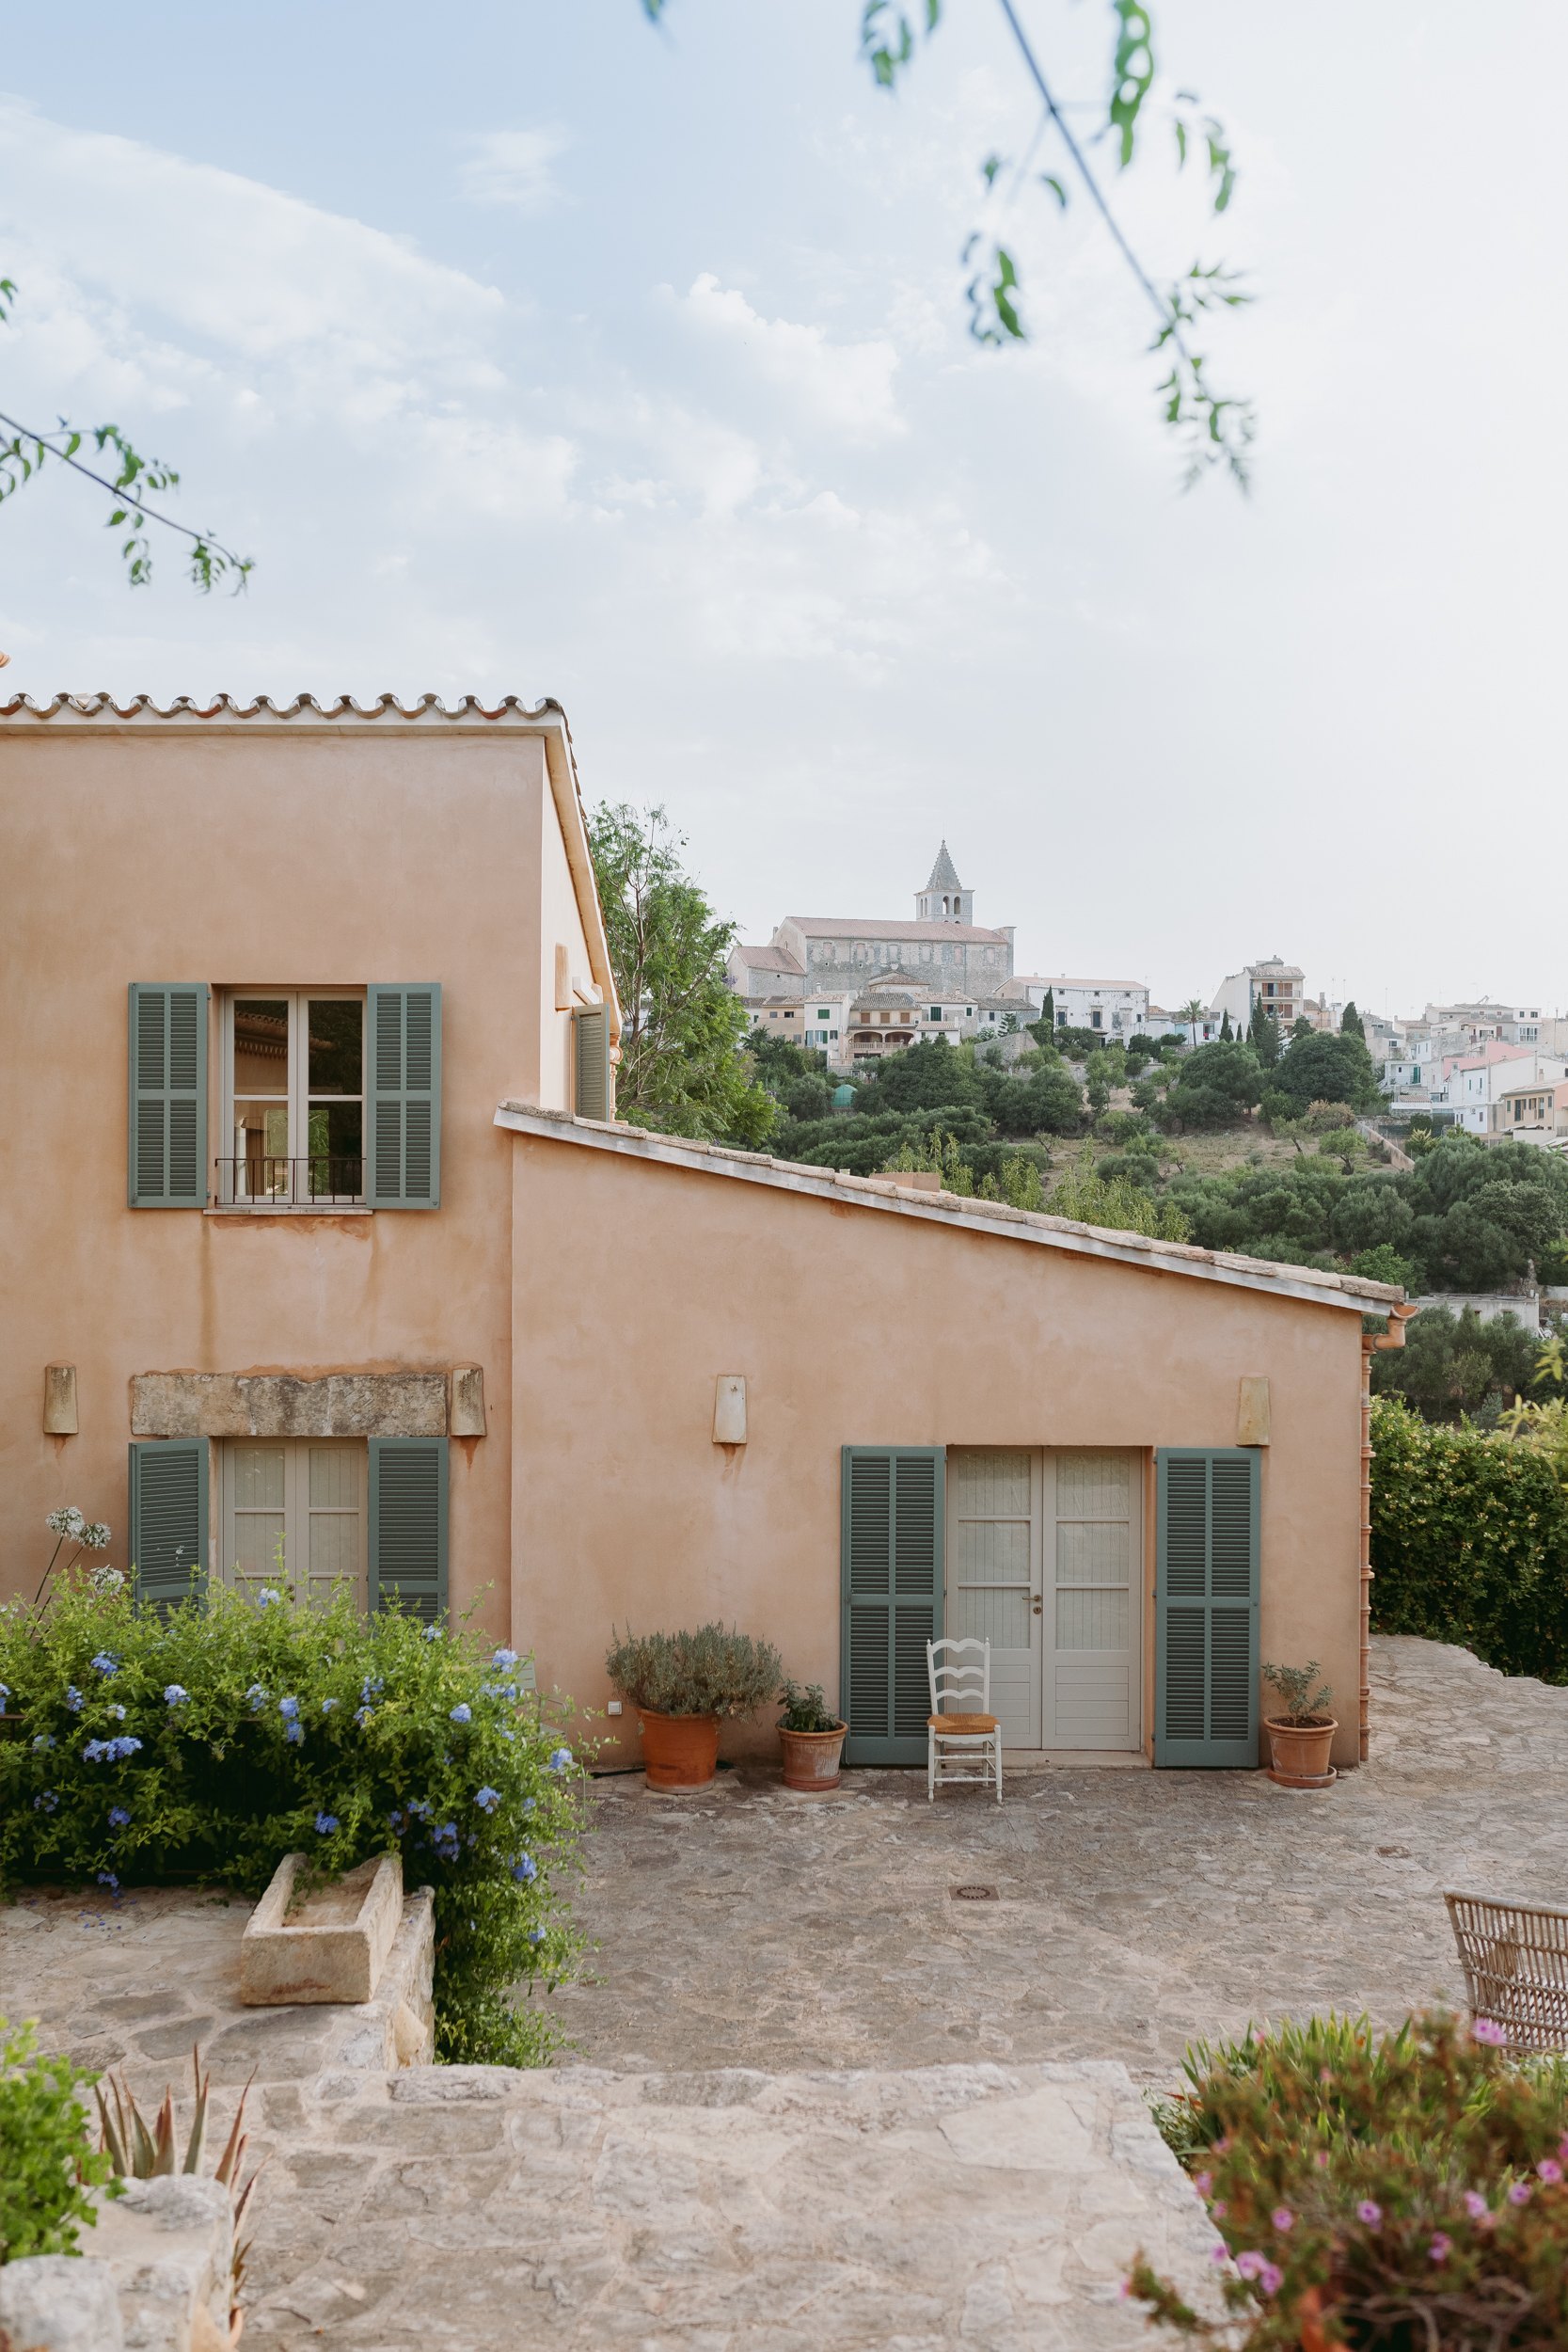 Can-Miret-2018-Mallorca-Holiday-House-Cee-Cee-Creative-IMG_6372_lowres